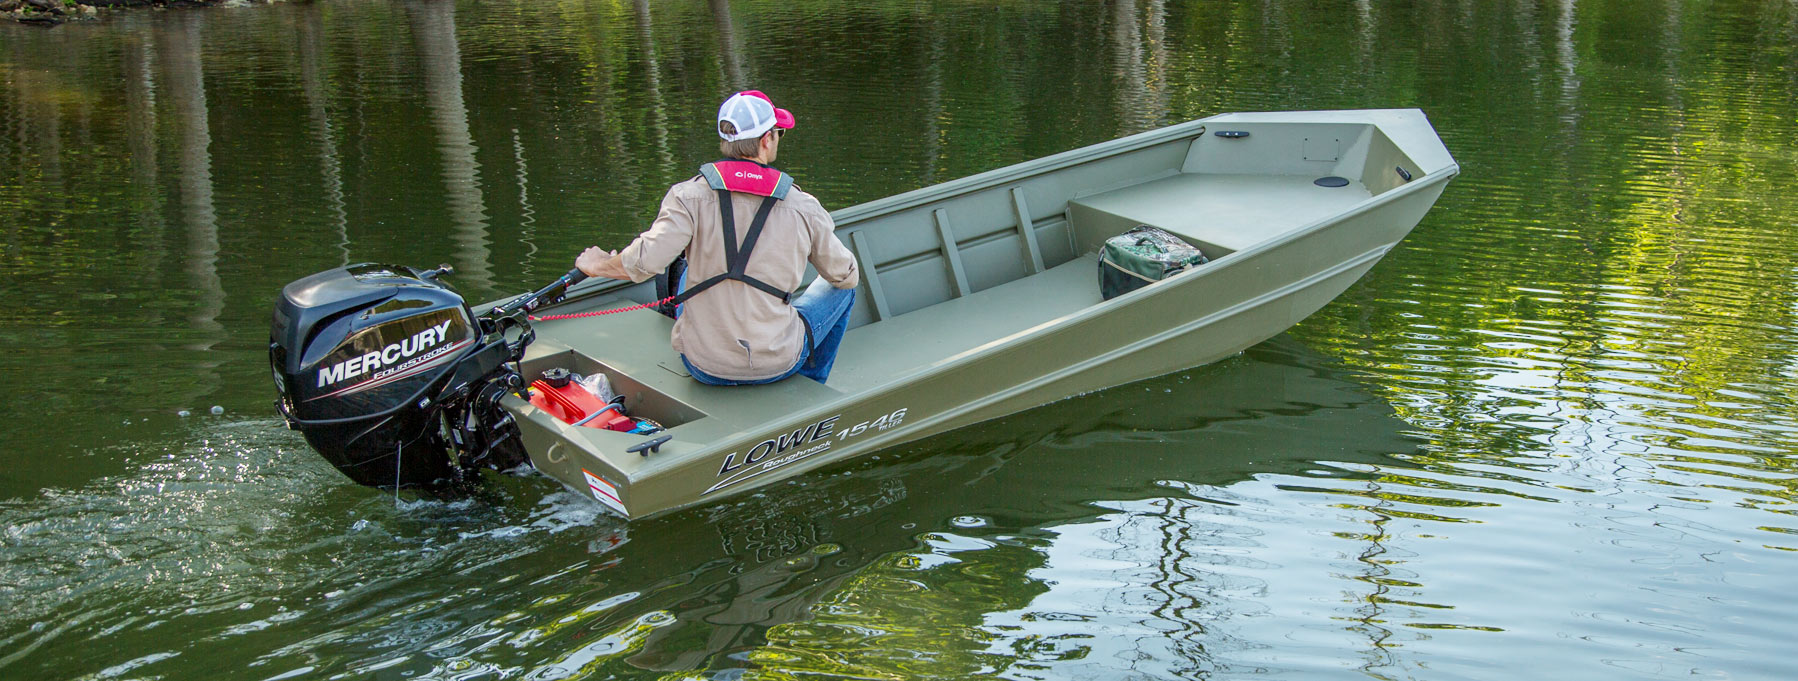 2018 Roughneck 1546 Jon Duck Hunting and Fishing Boat | Lowe Boats